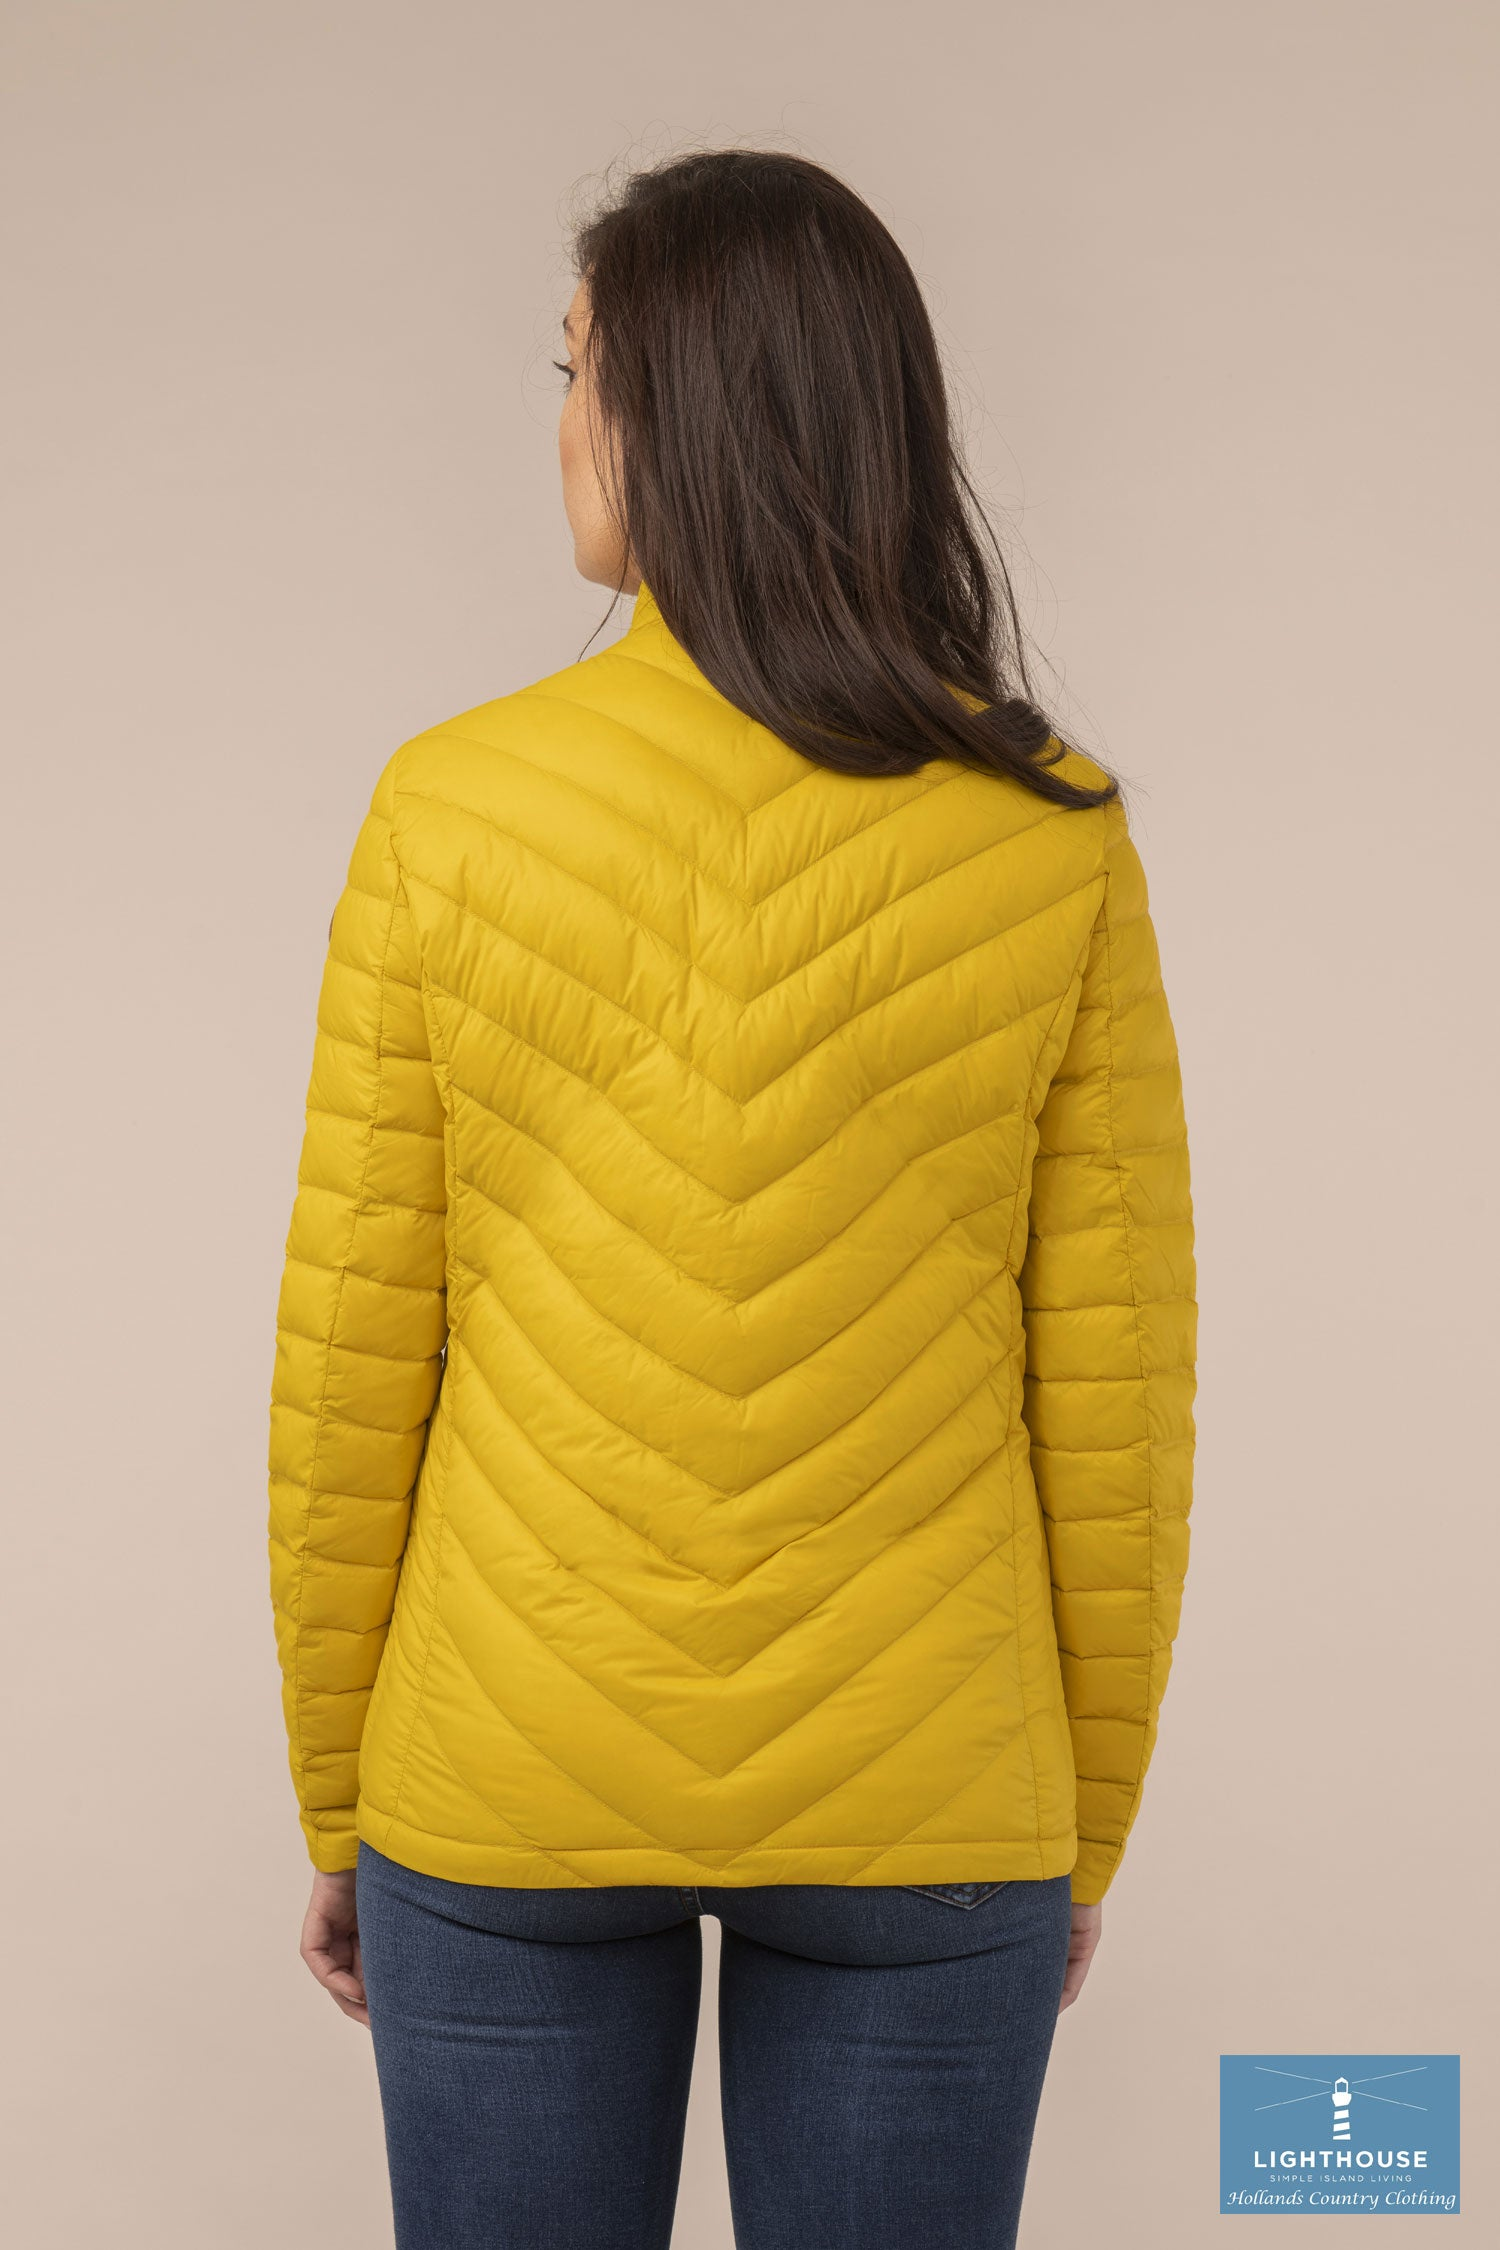 Back View Ladies Lighthouse Lara Down Jacket Sunrise Yellow